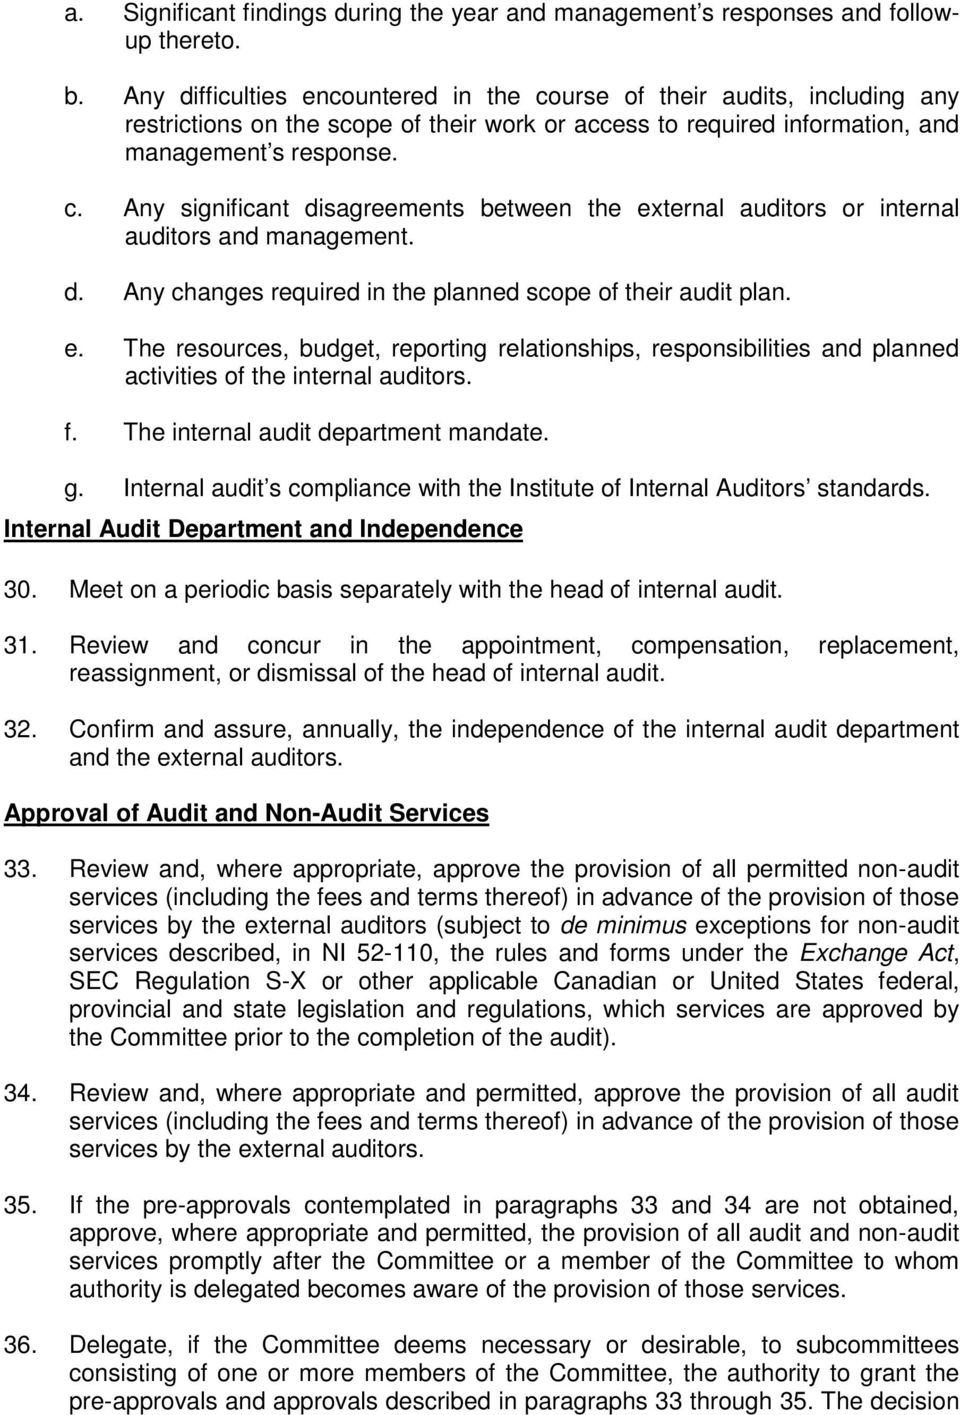 d. Any changes required in the planned scope of their audit plan. e. The resources, budget, reporting relationships, responsibilities and planned activities of the internal auditors. f.